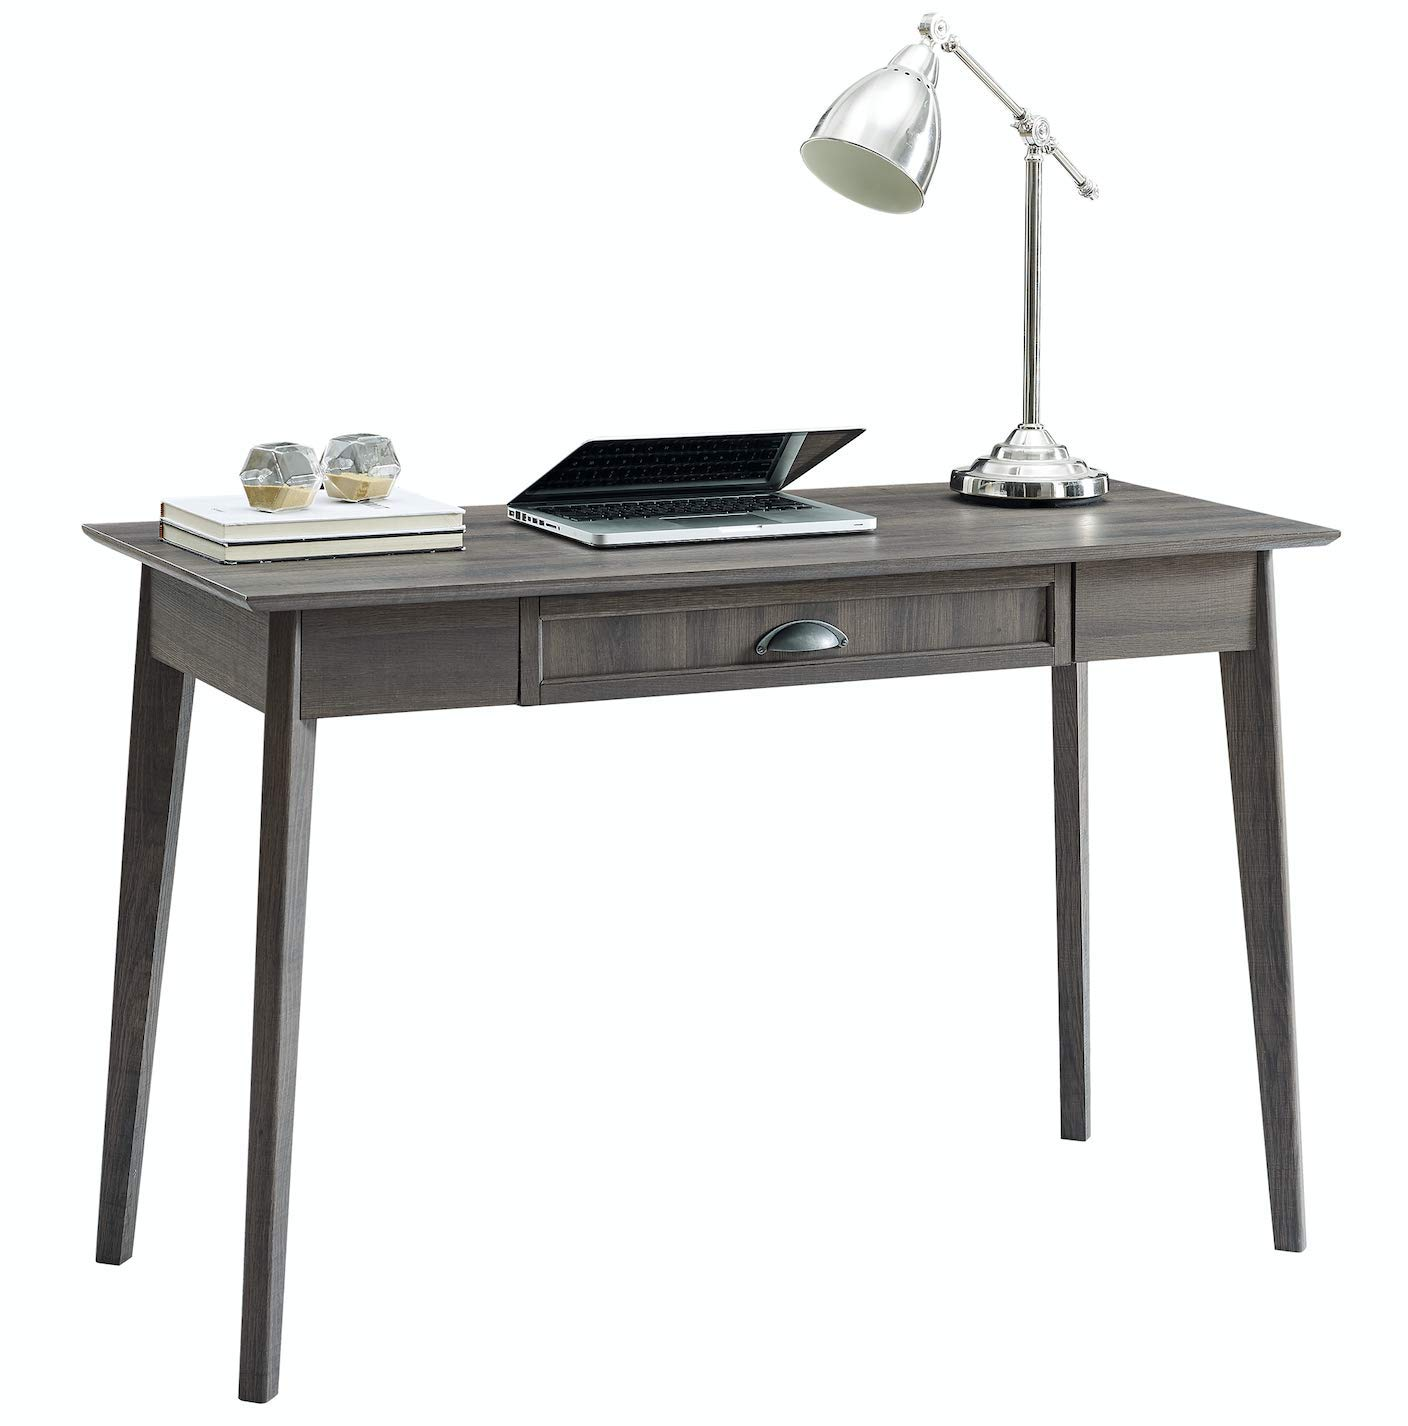 Newport Series Home Office Computer Writing Desk with Fully Extended Drawer | Laptop PC Workstation with USB Hub | Sturdy and Stylish | Easy Assembly| Smoke Oak Wood Look Accent Living Room Furniture by CAFFOZ Furniture Designs